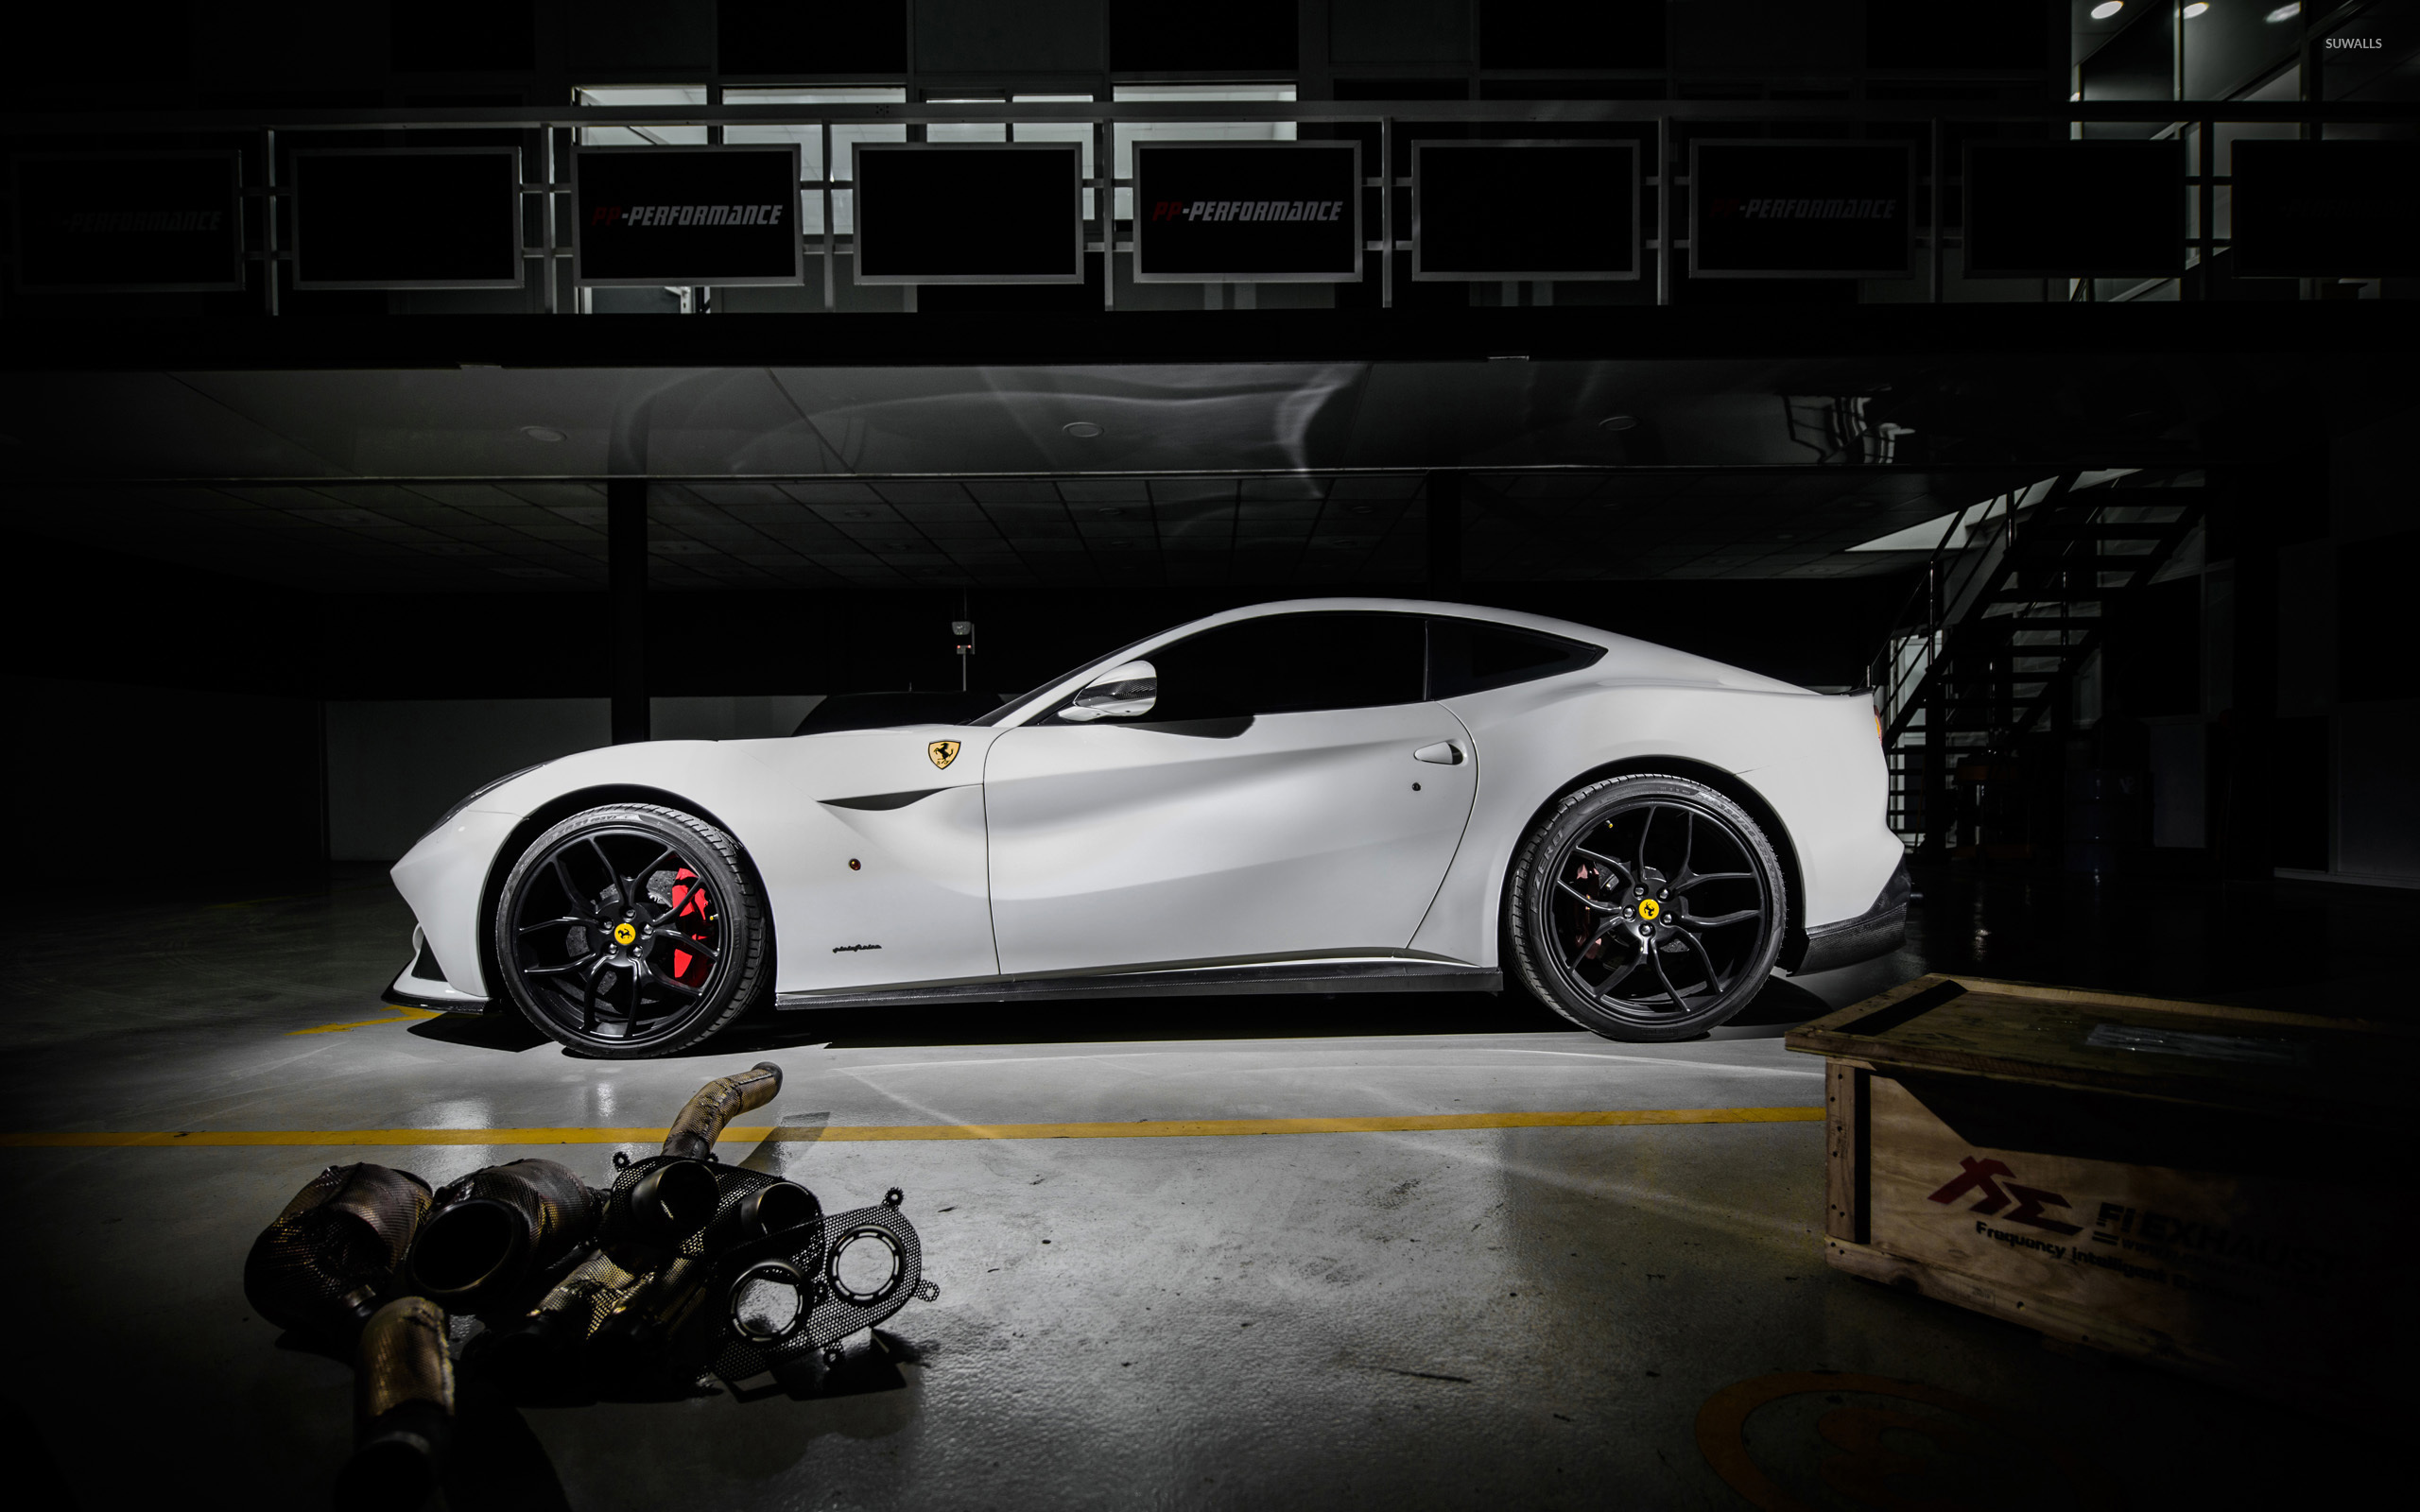 ferrari 2014 white wallpaper. white 2014 pp performance ferrari f12berlinetta side view wallpaper